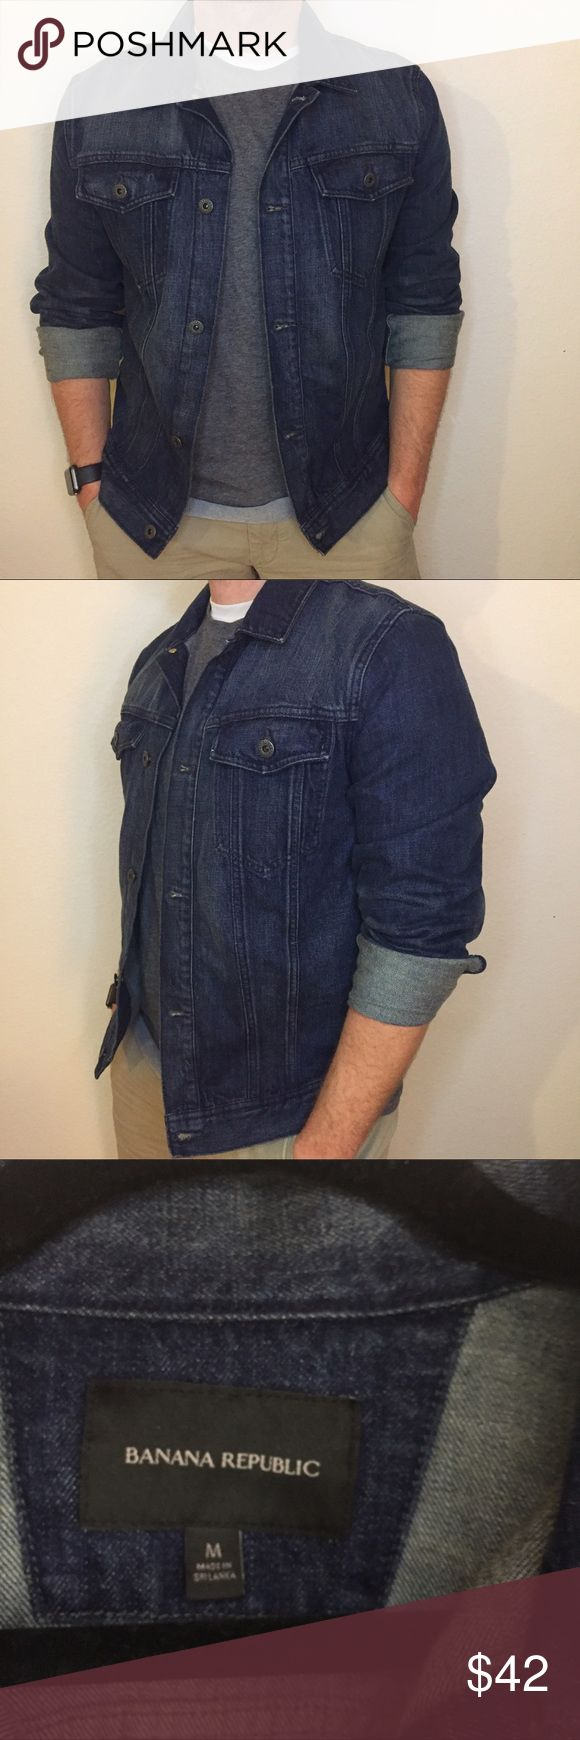 Banana Republic Denim Jacket. Banana Republic Denim Jacket. Like new. Has a good vintage look. They always say Denim never goes out of style. Banana Republic Jackets & Coats